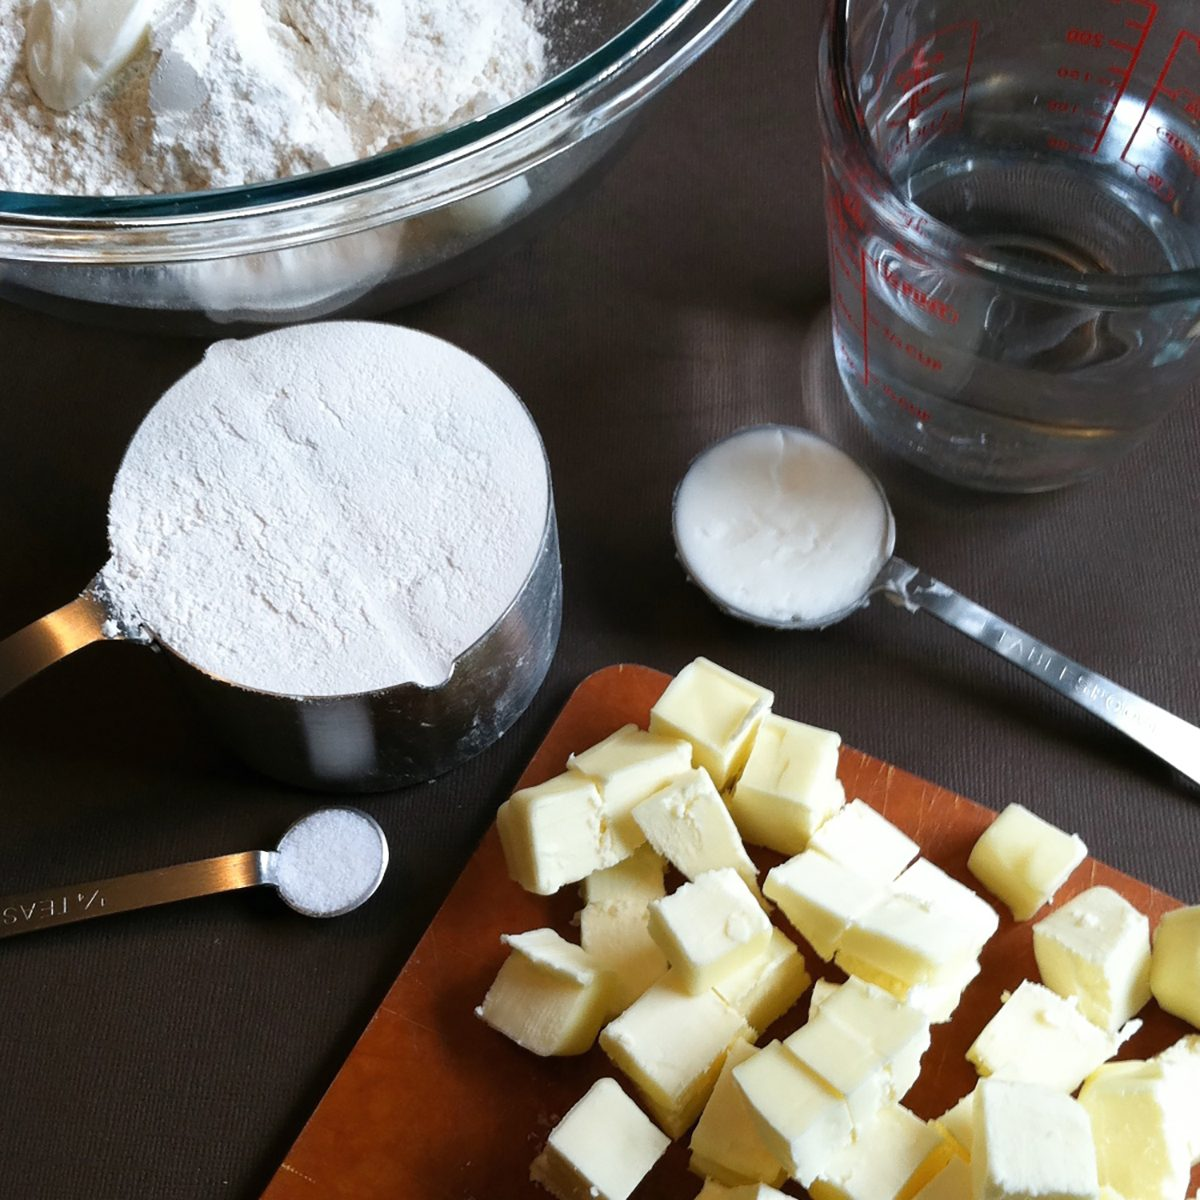 The Most Common Reasons Why Your Pie Crust Isn't Working